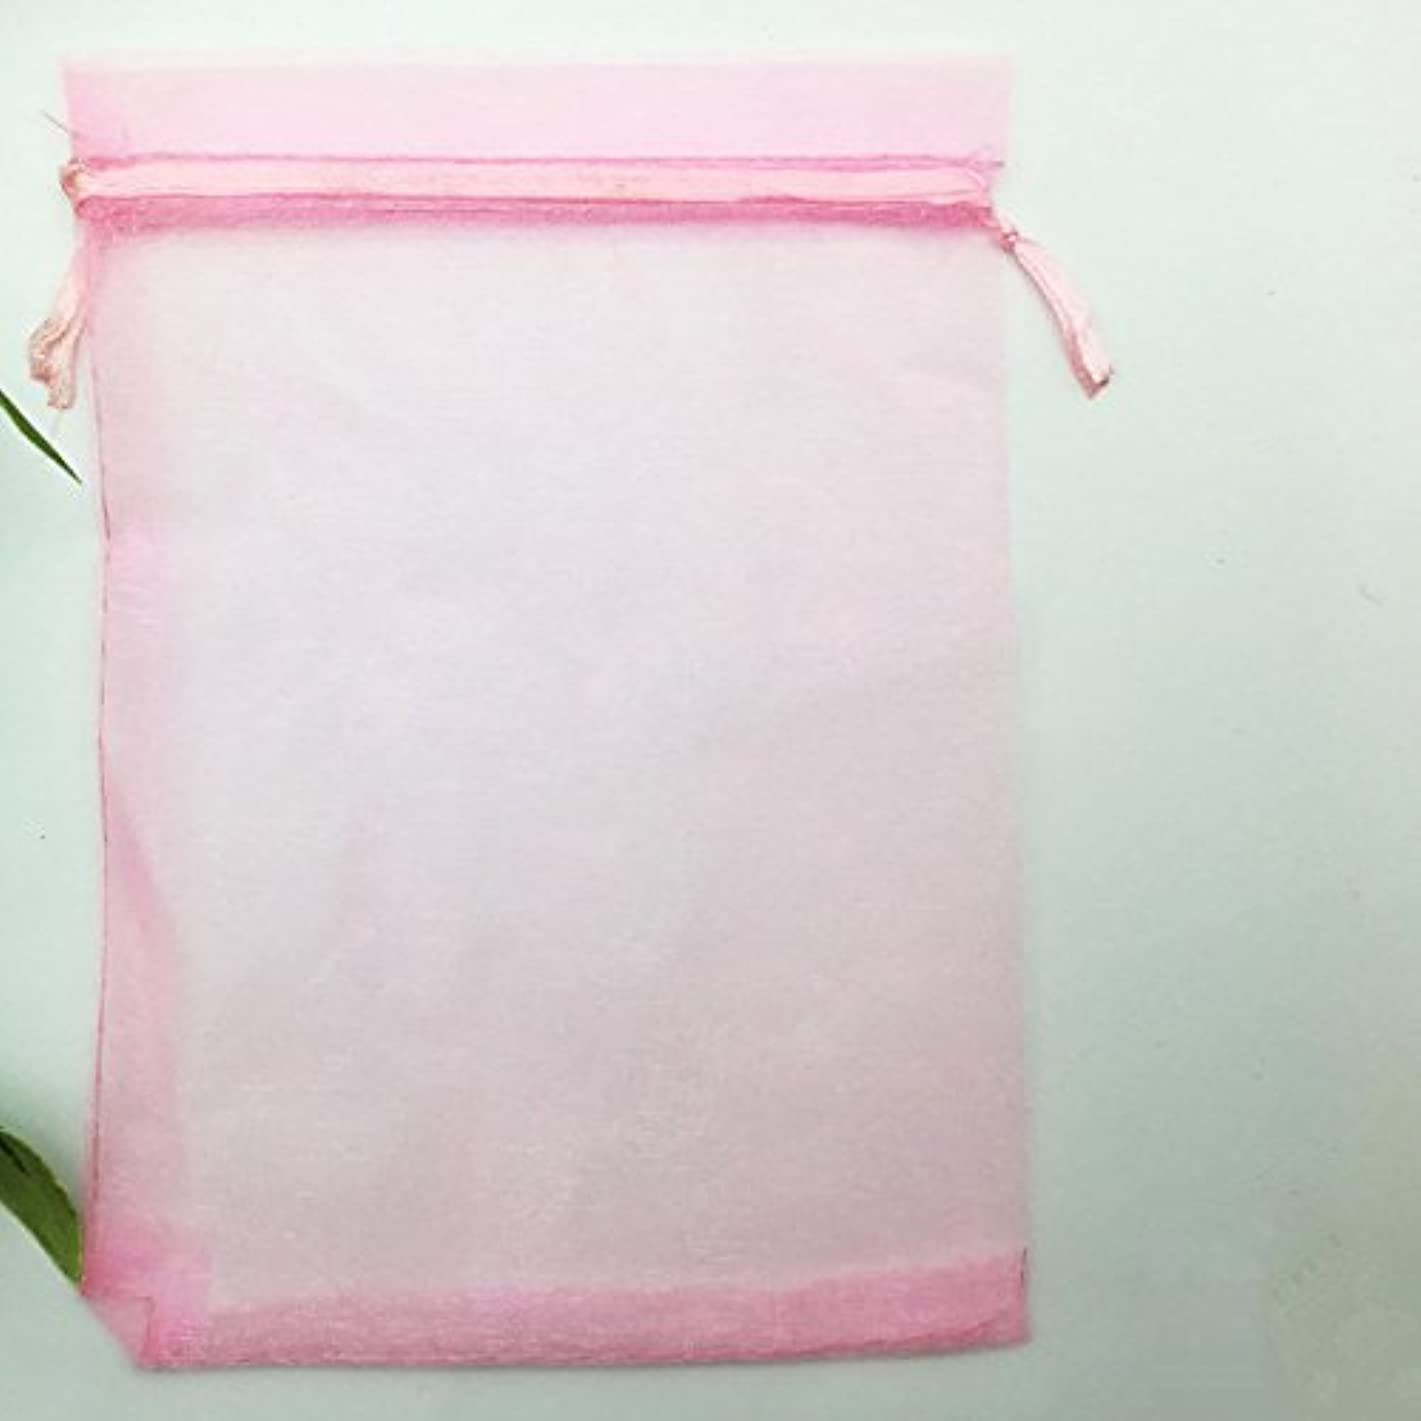 3.94x5.91 Inches Sheer Drawstring Organza Jewelry Pouches Wedding Party Christmas Favor Gift Bags. (Pink,50)